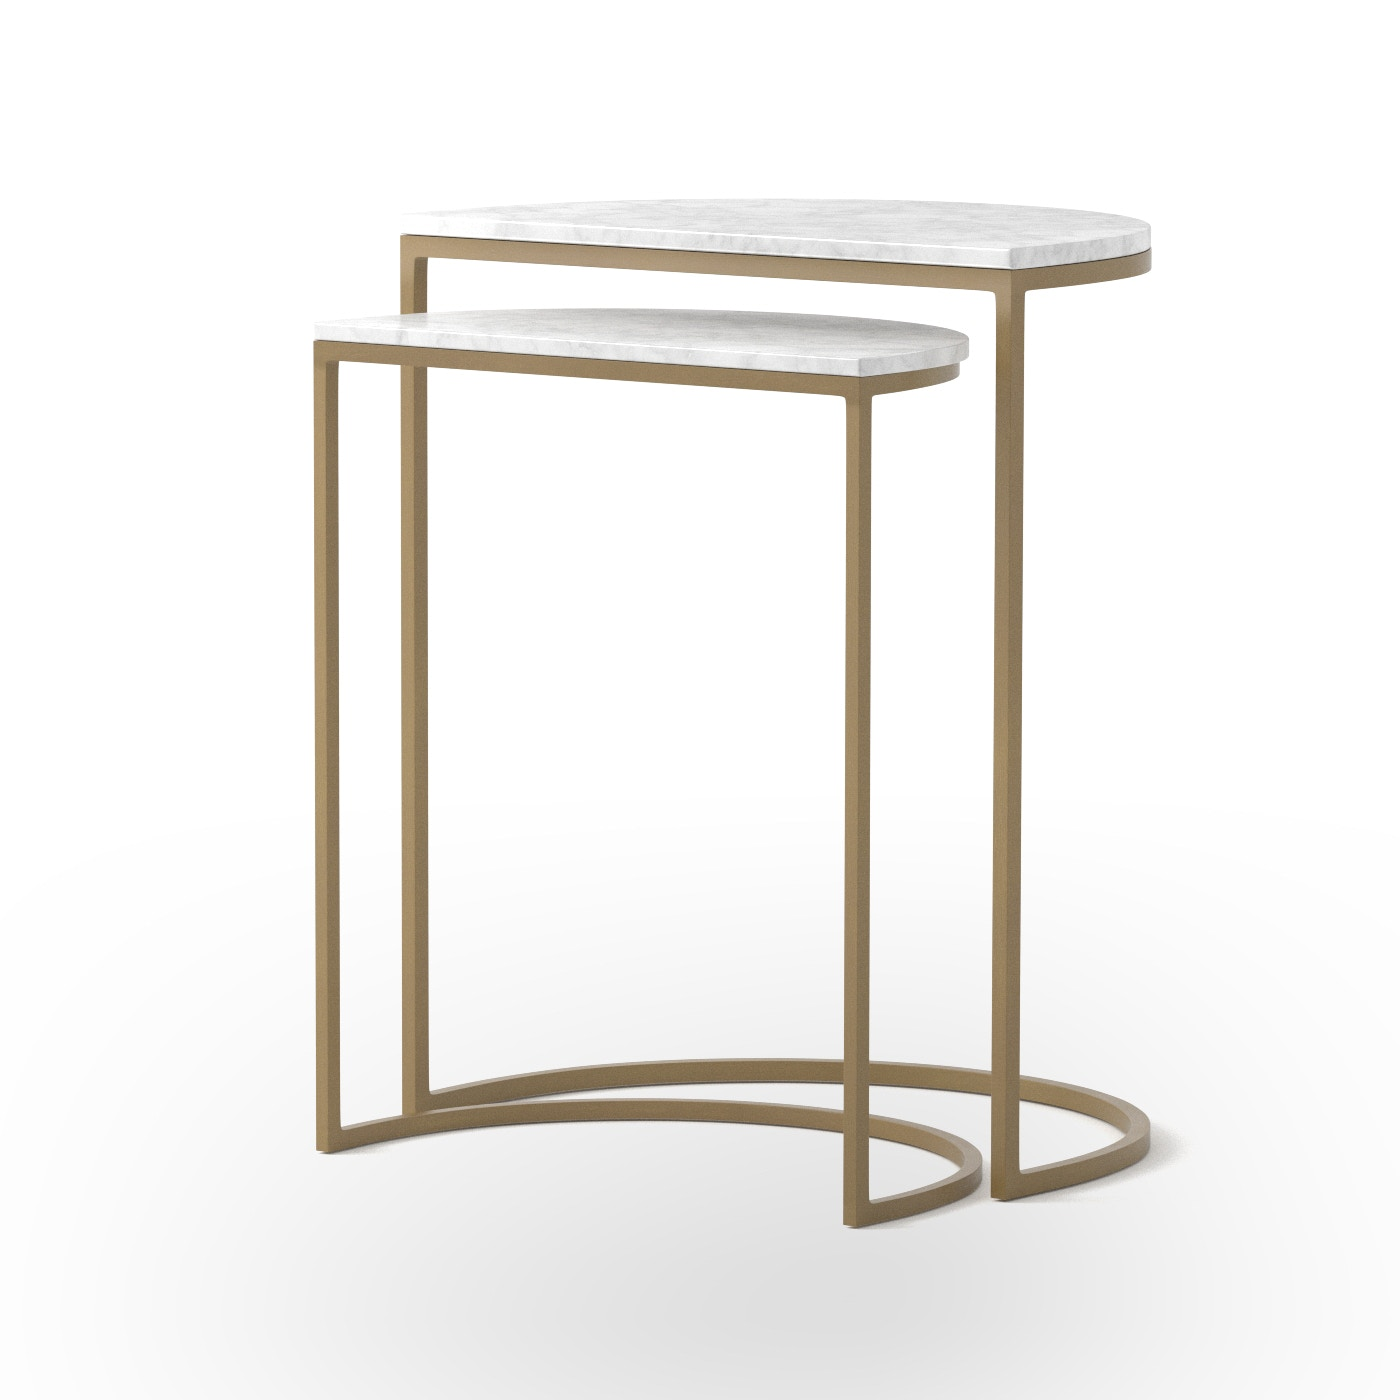 nesting furniture. Four Hands Furniture Ane Nesting Tables-Matte Brass IMAR-88-MBR